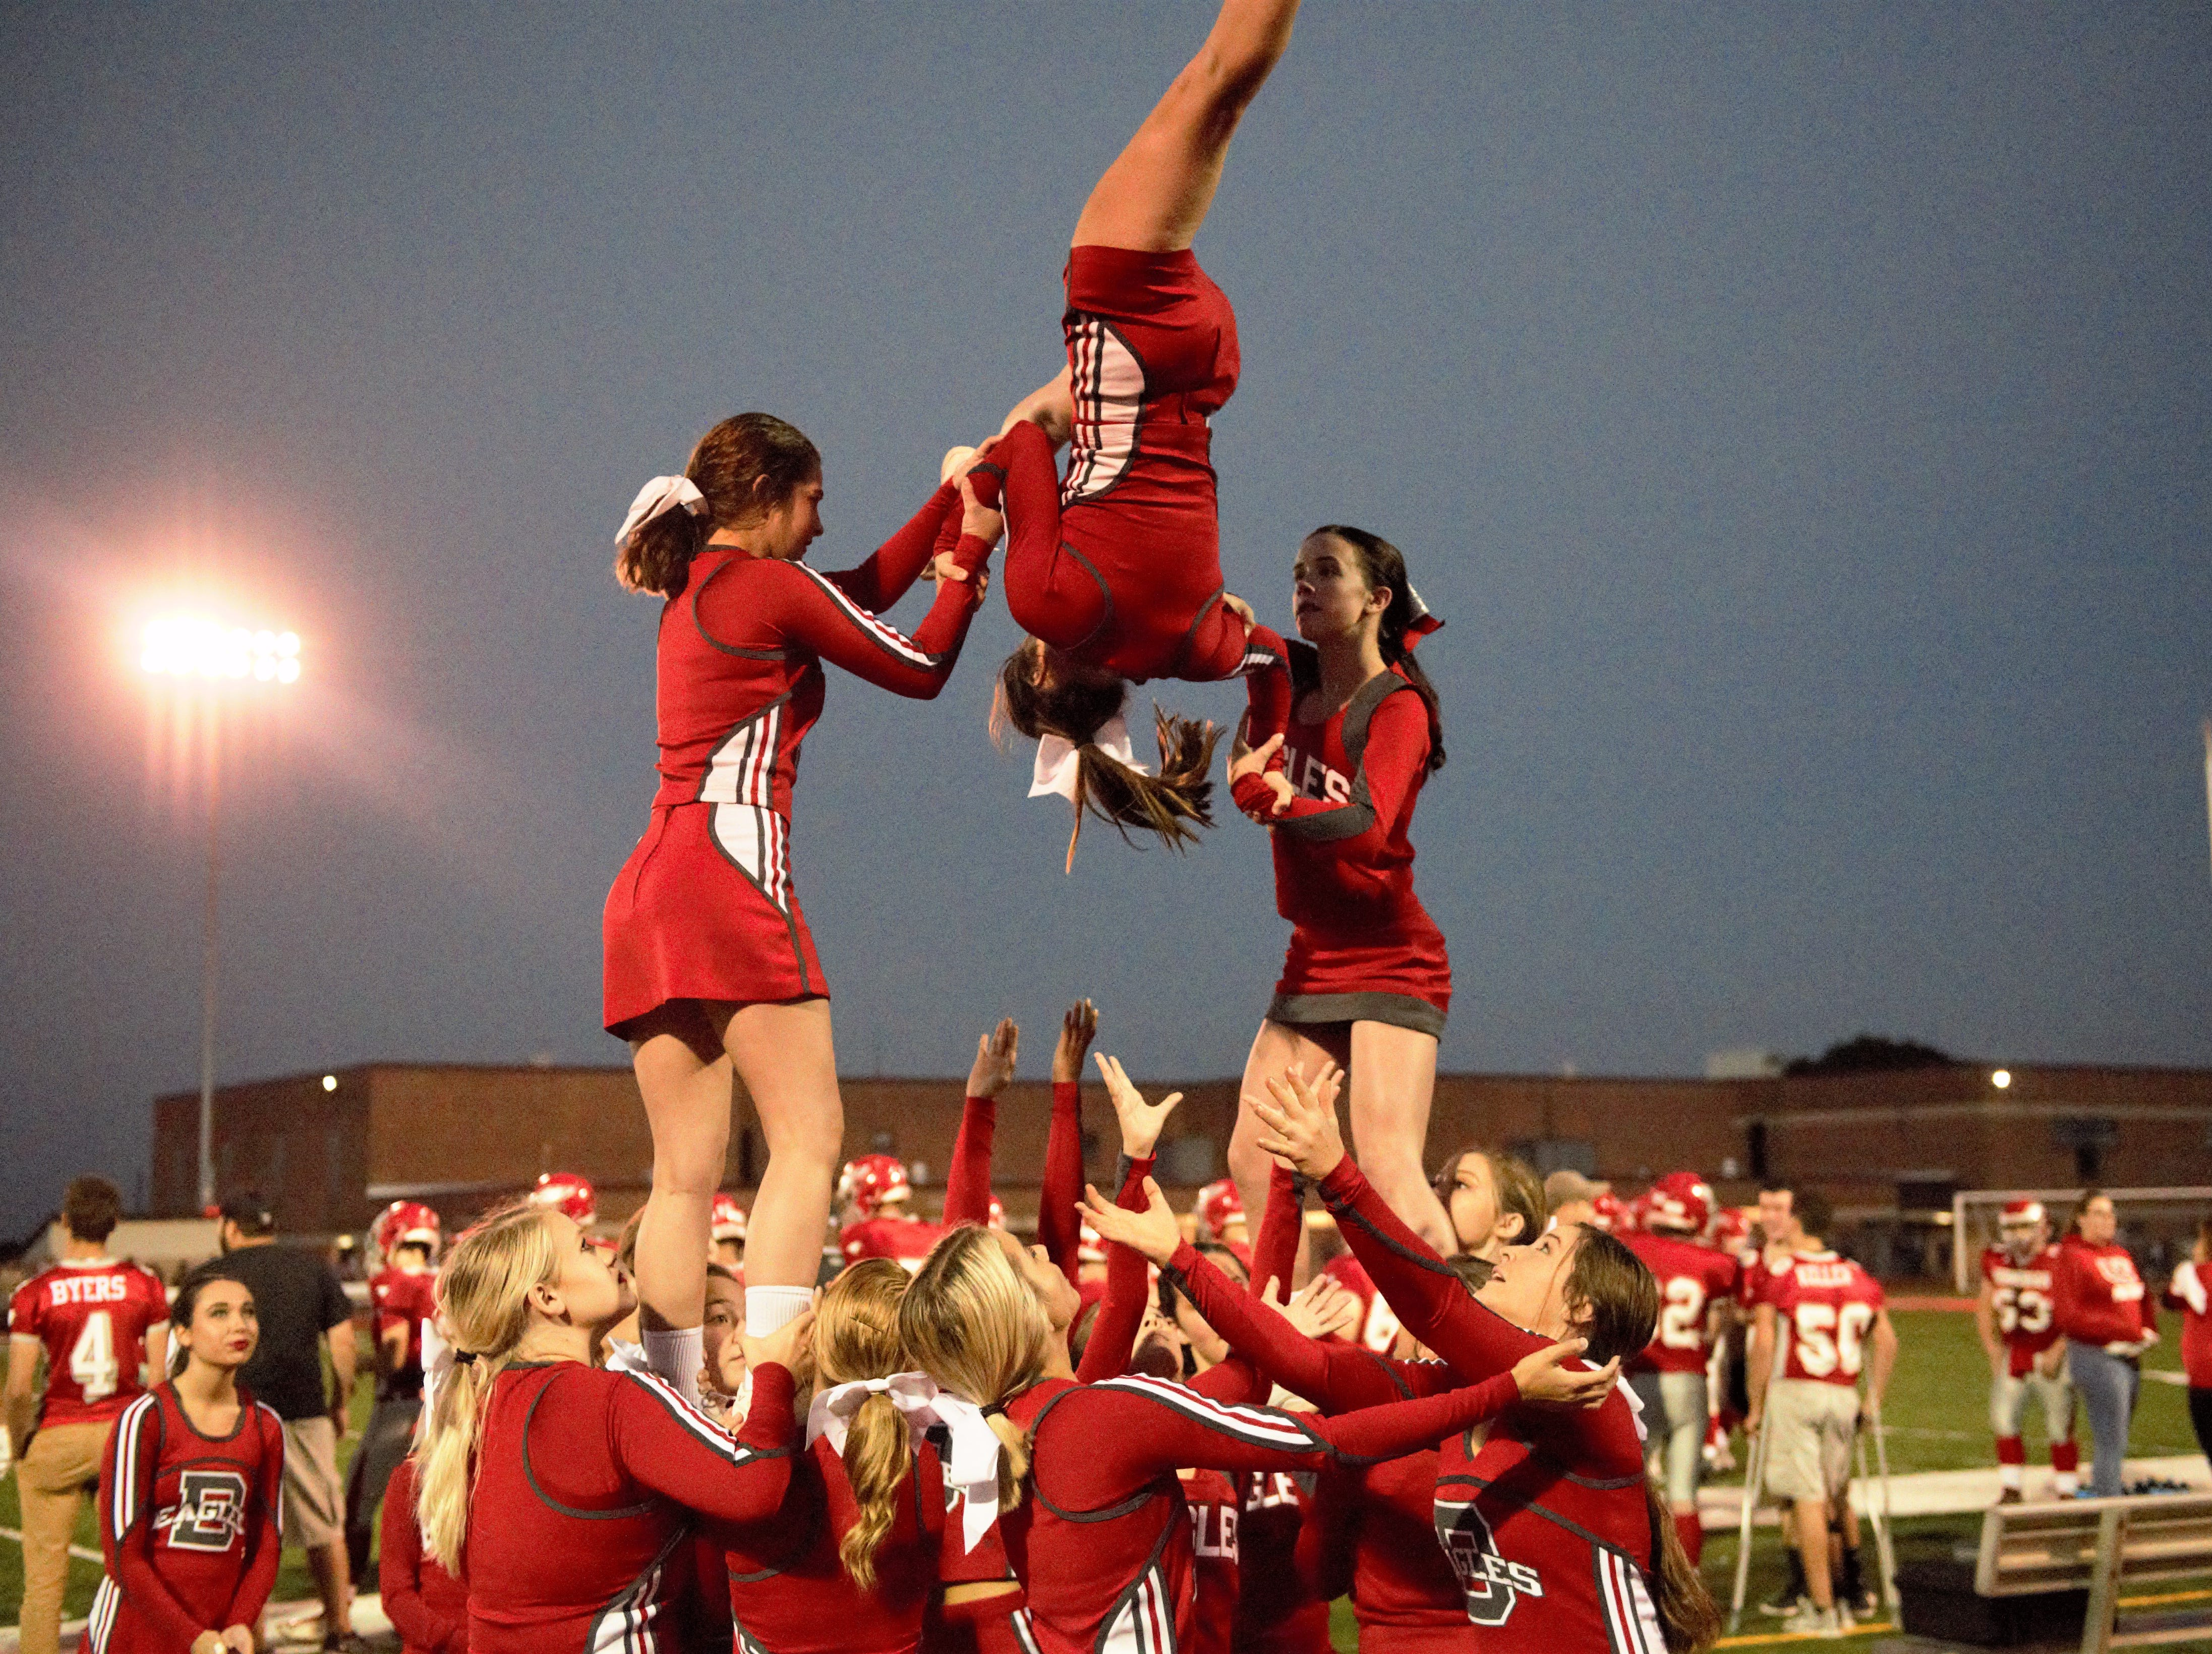 Bermudian Springs cheer leaders at the game against Delone Catholic on Oct. 5.